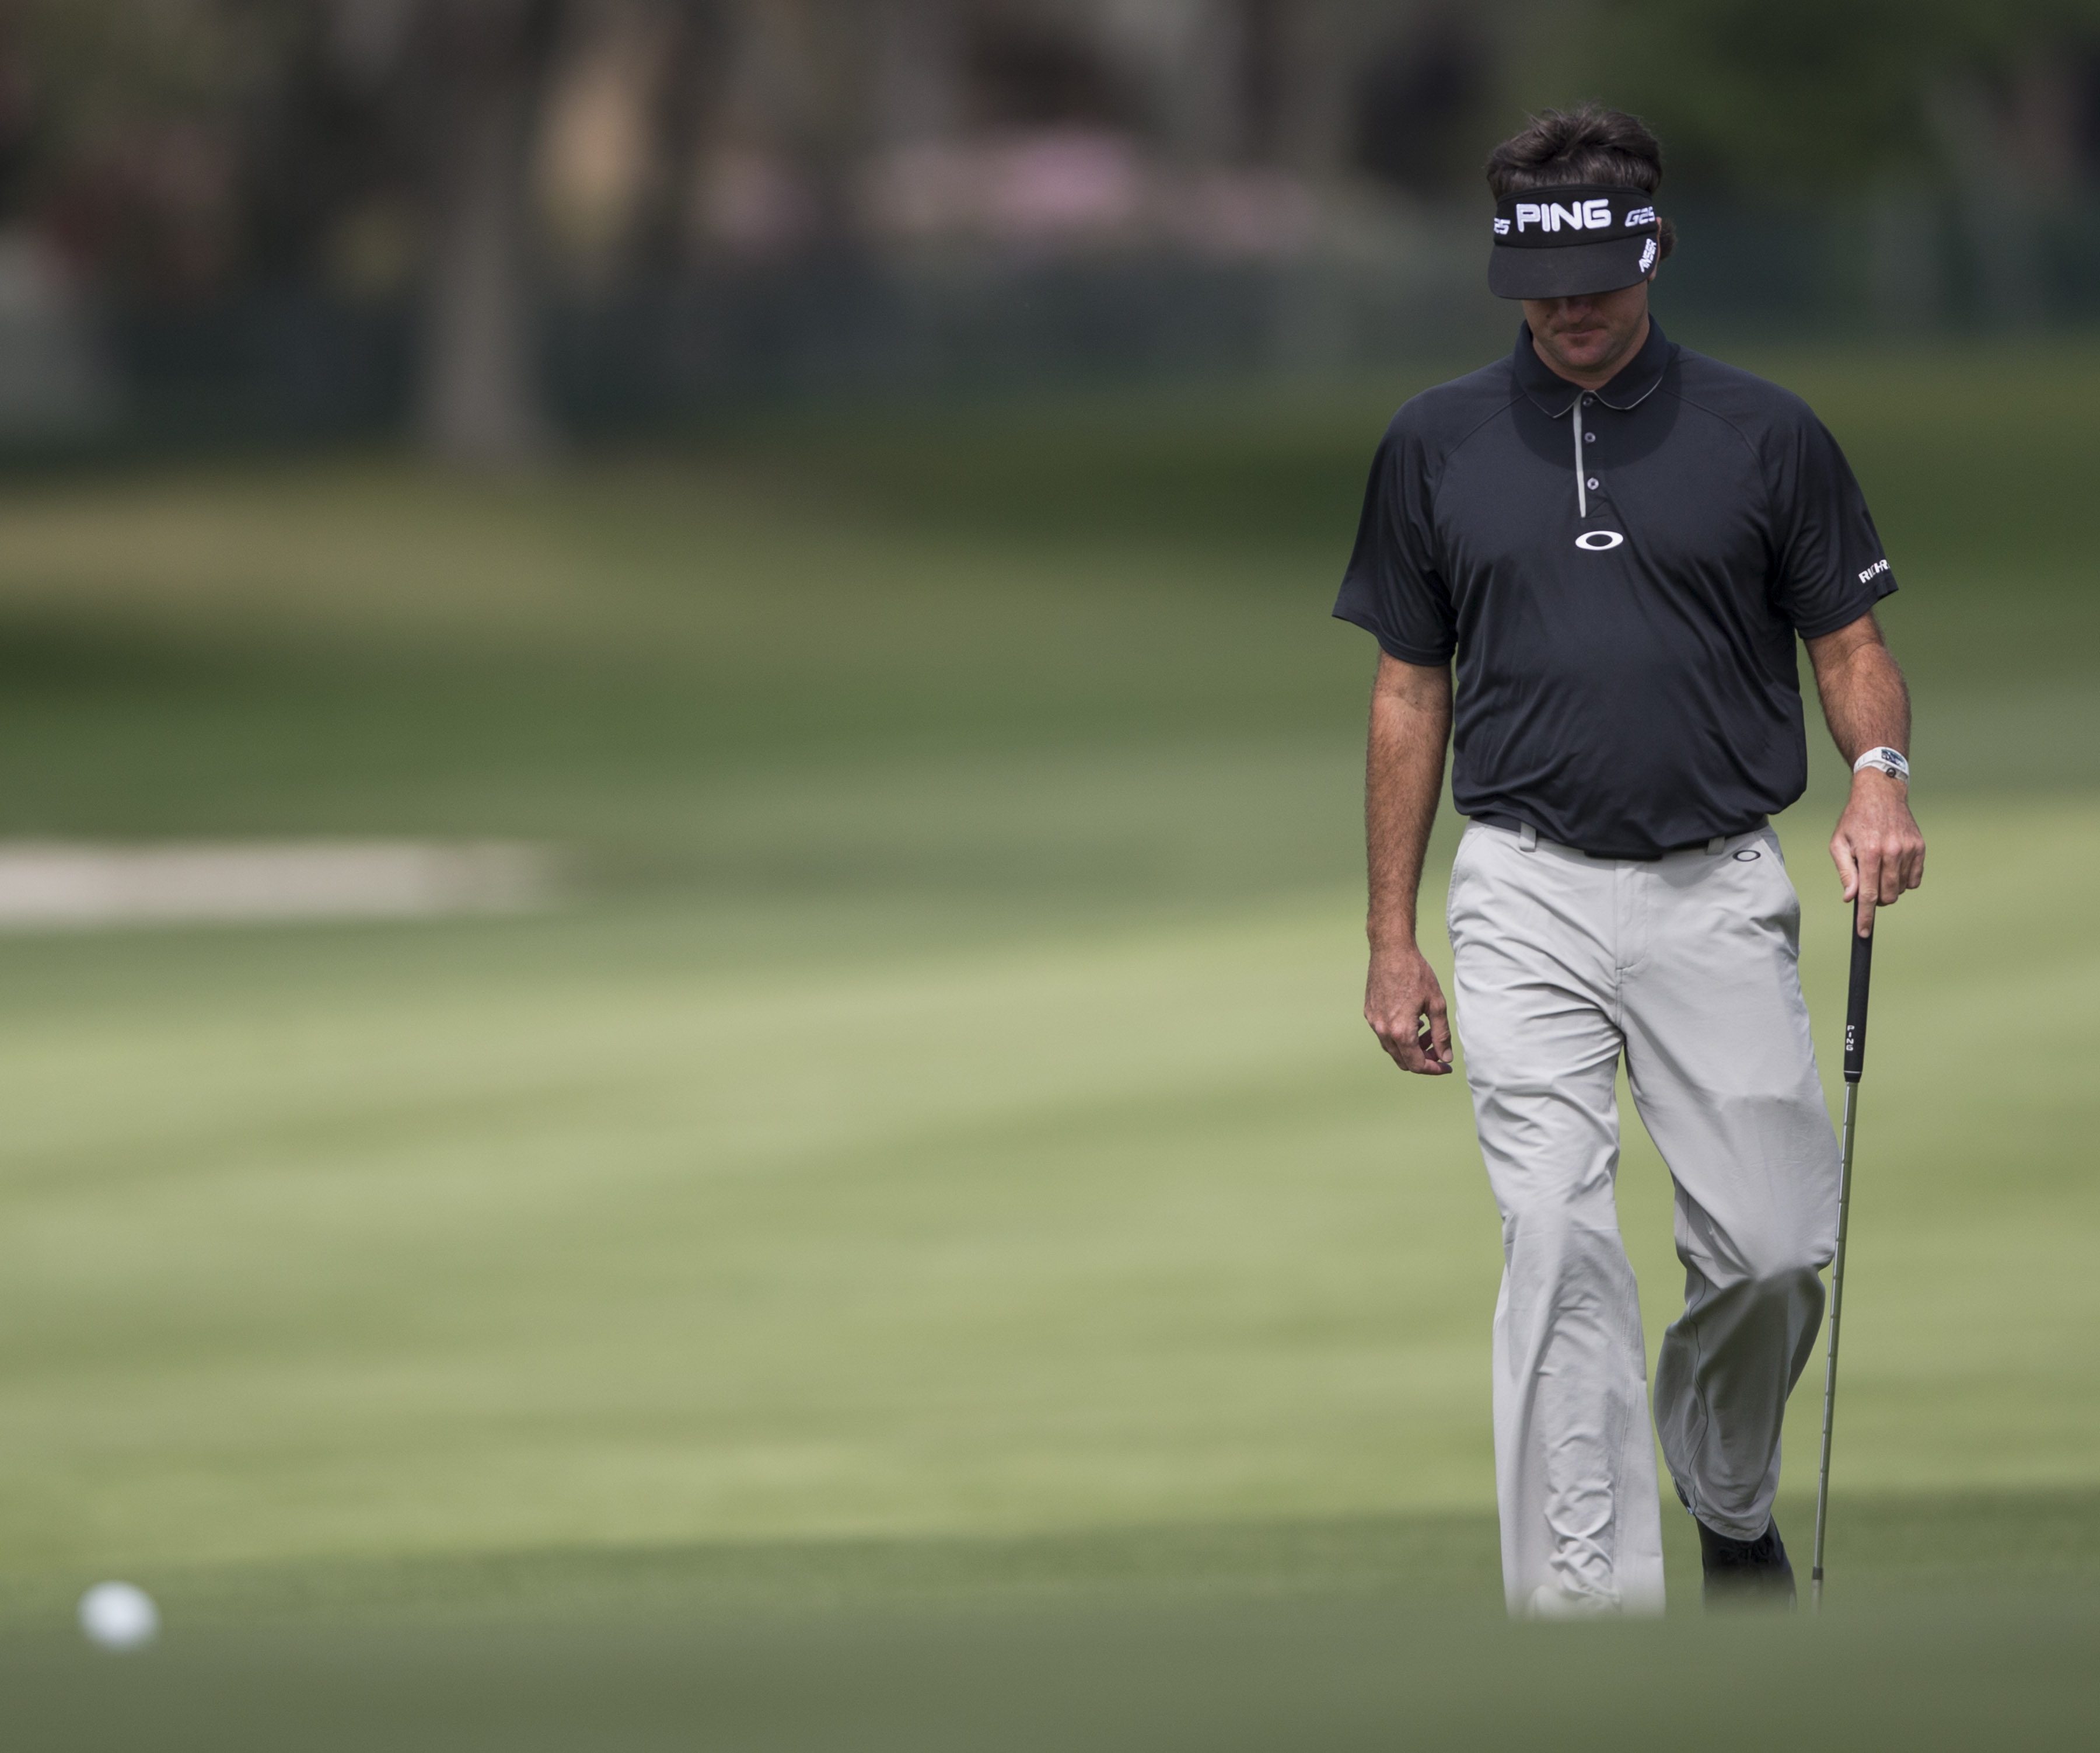 Bubba Watson walks up the fairway on the fifth hole during the first round of the Arnold Palmer Invitational golf tournament at Bay Hill Thursday March 20, 2014, in Orlando, Fla